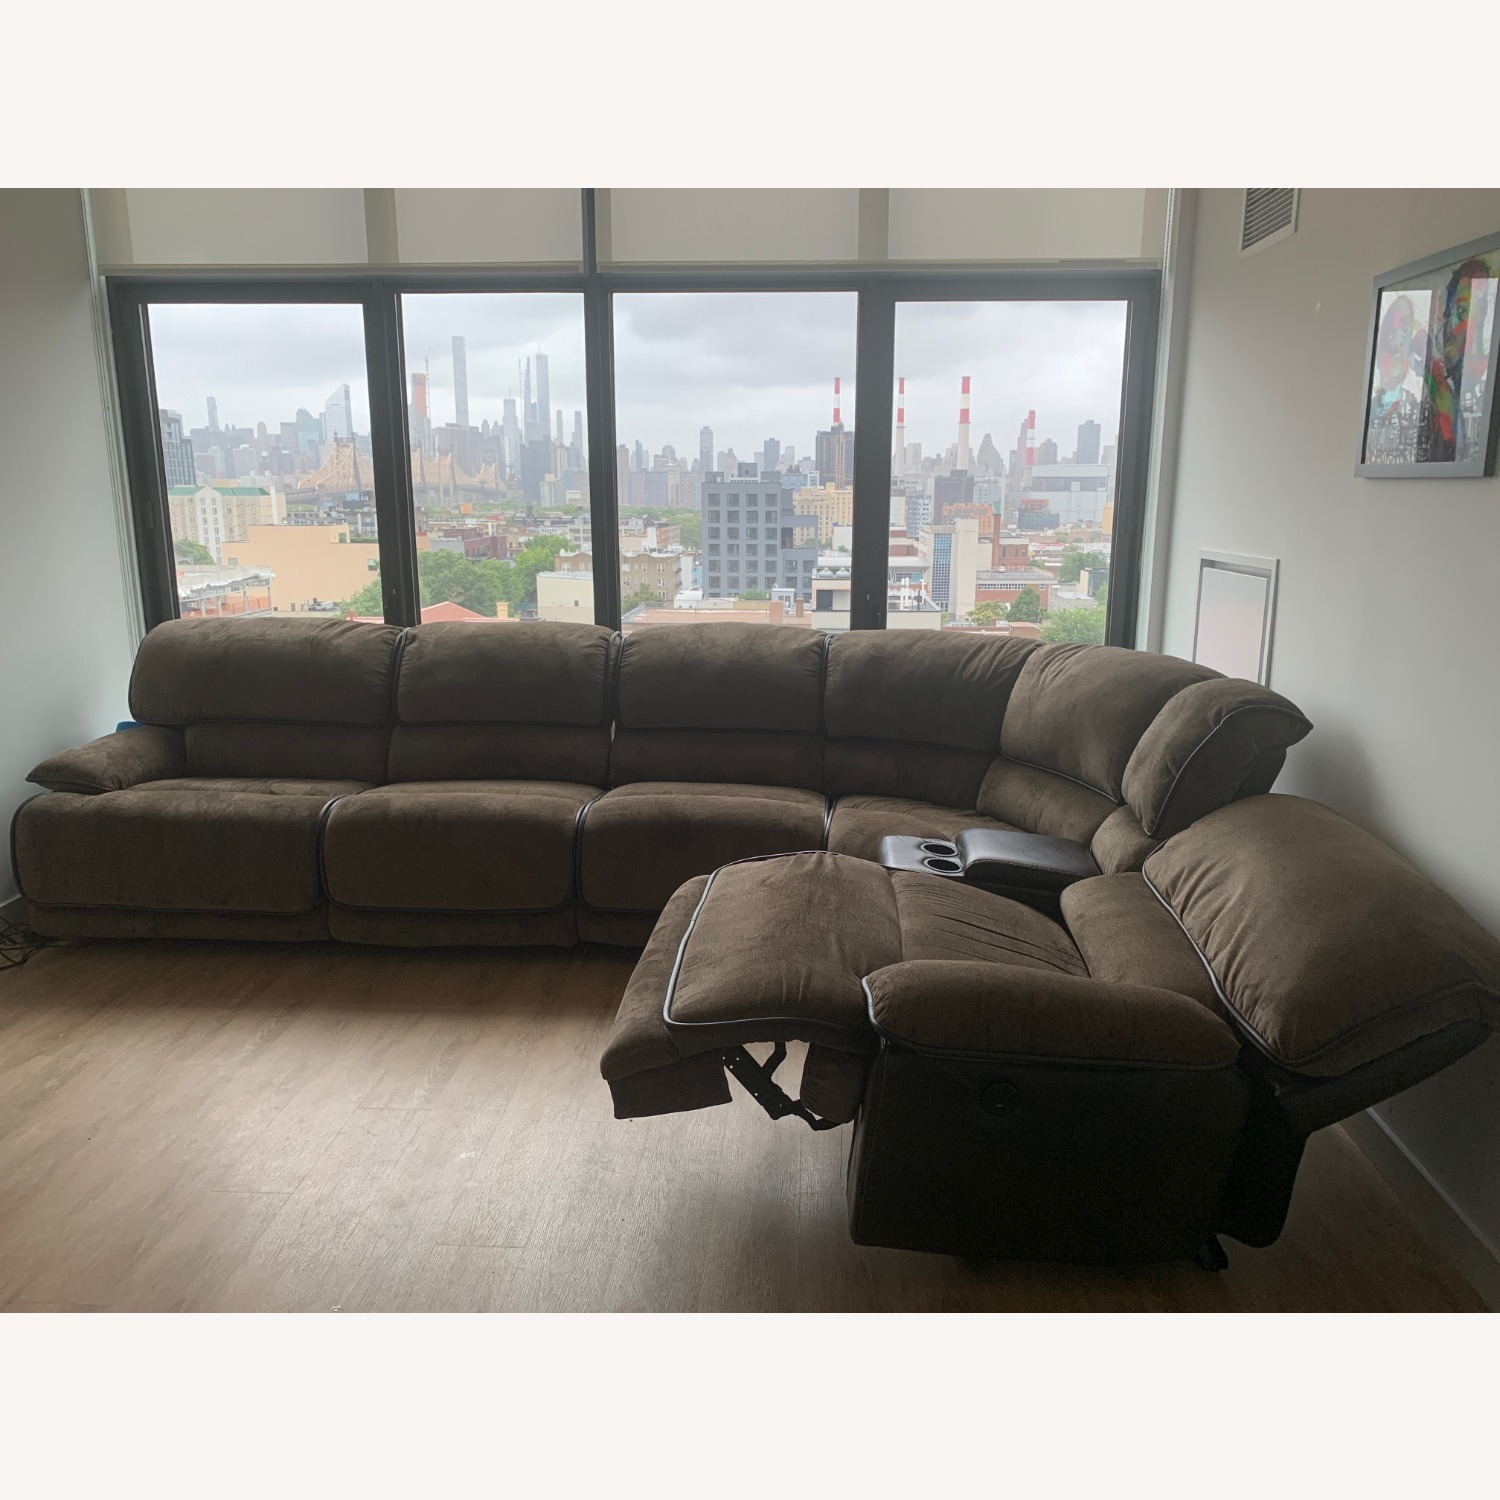 Bob's Discount 6 Piece Reclining Couch - image-2